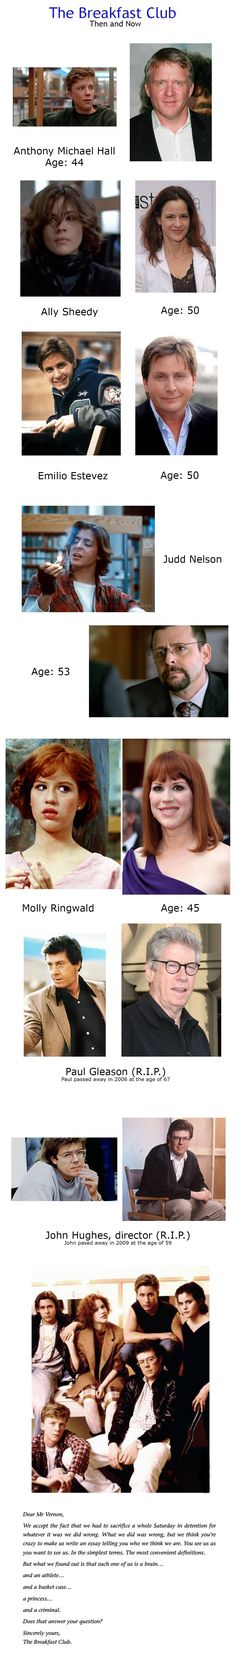 The Breakfast Club - Then and Now (OC) - Imgur